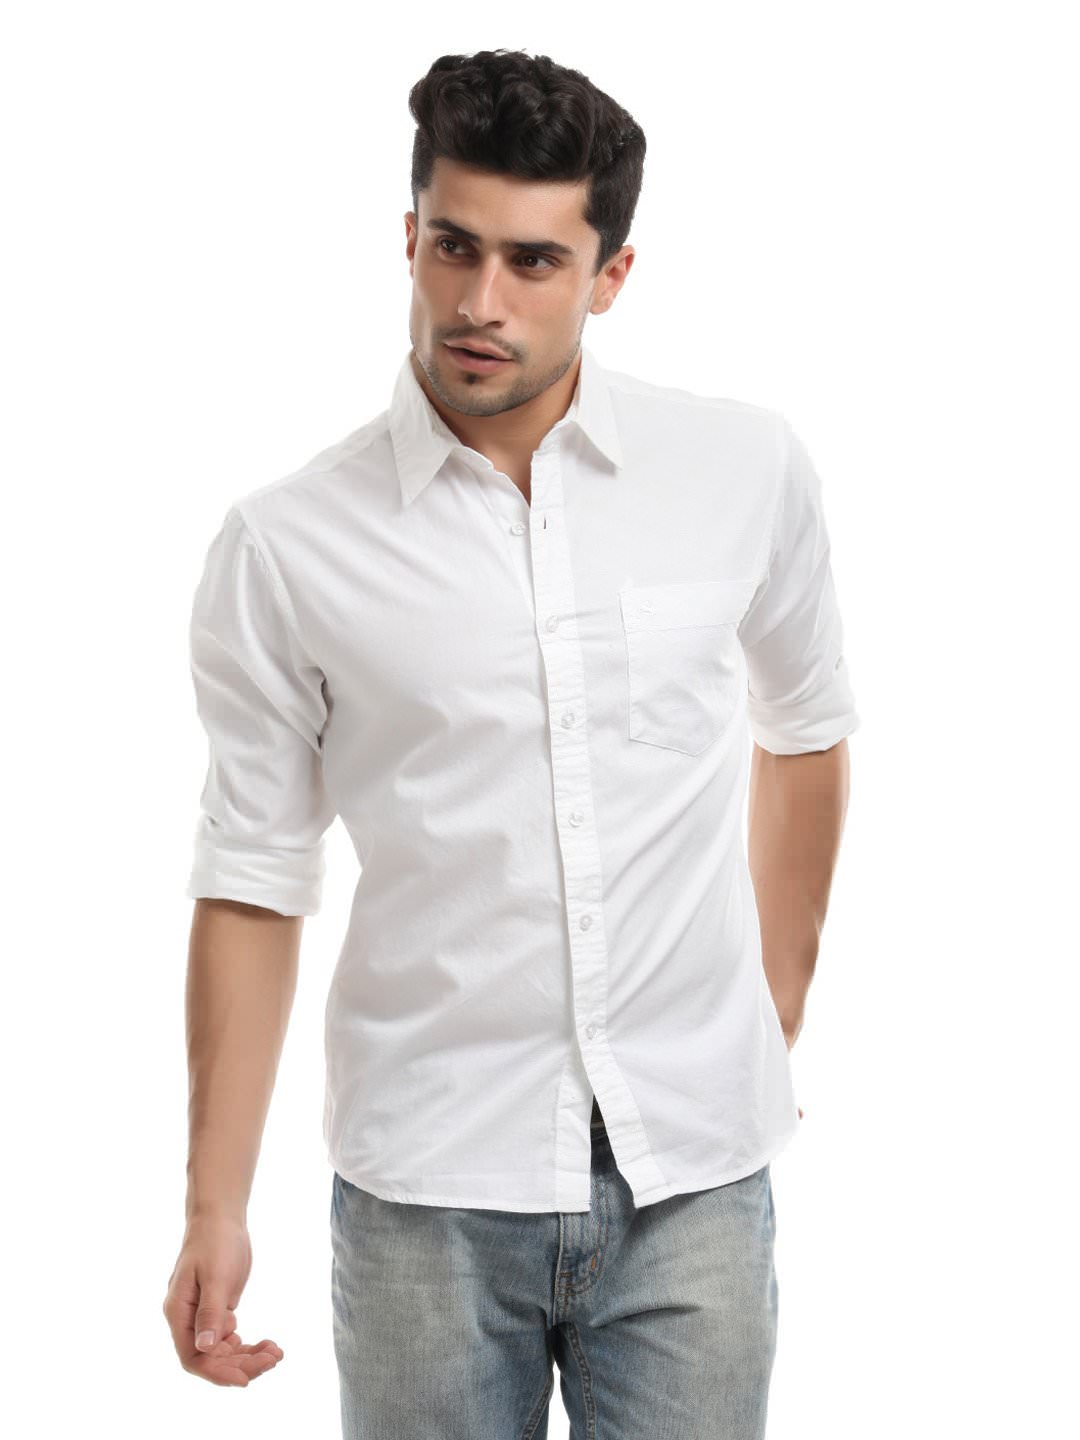 aom cotton shirt for in india shopclues